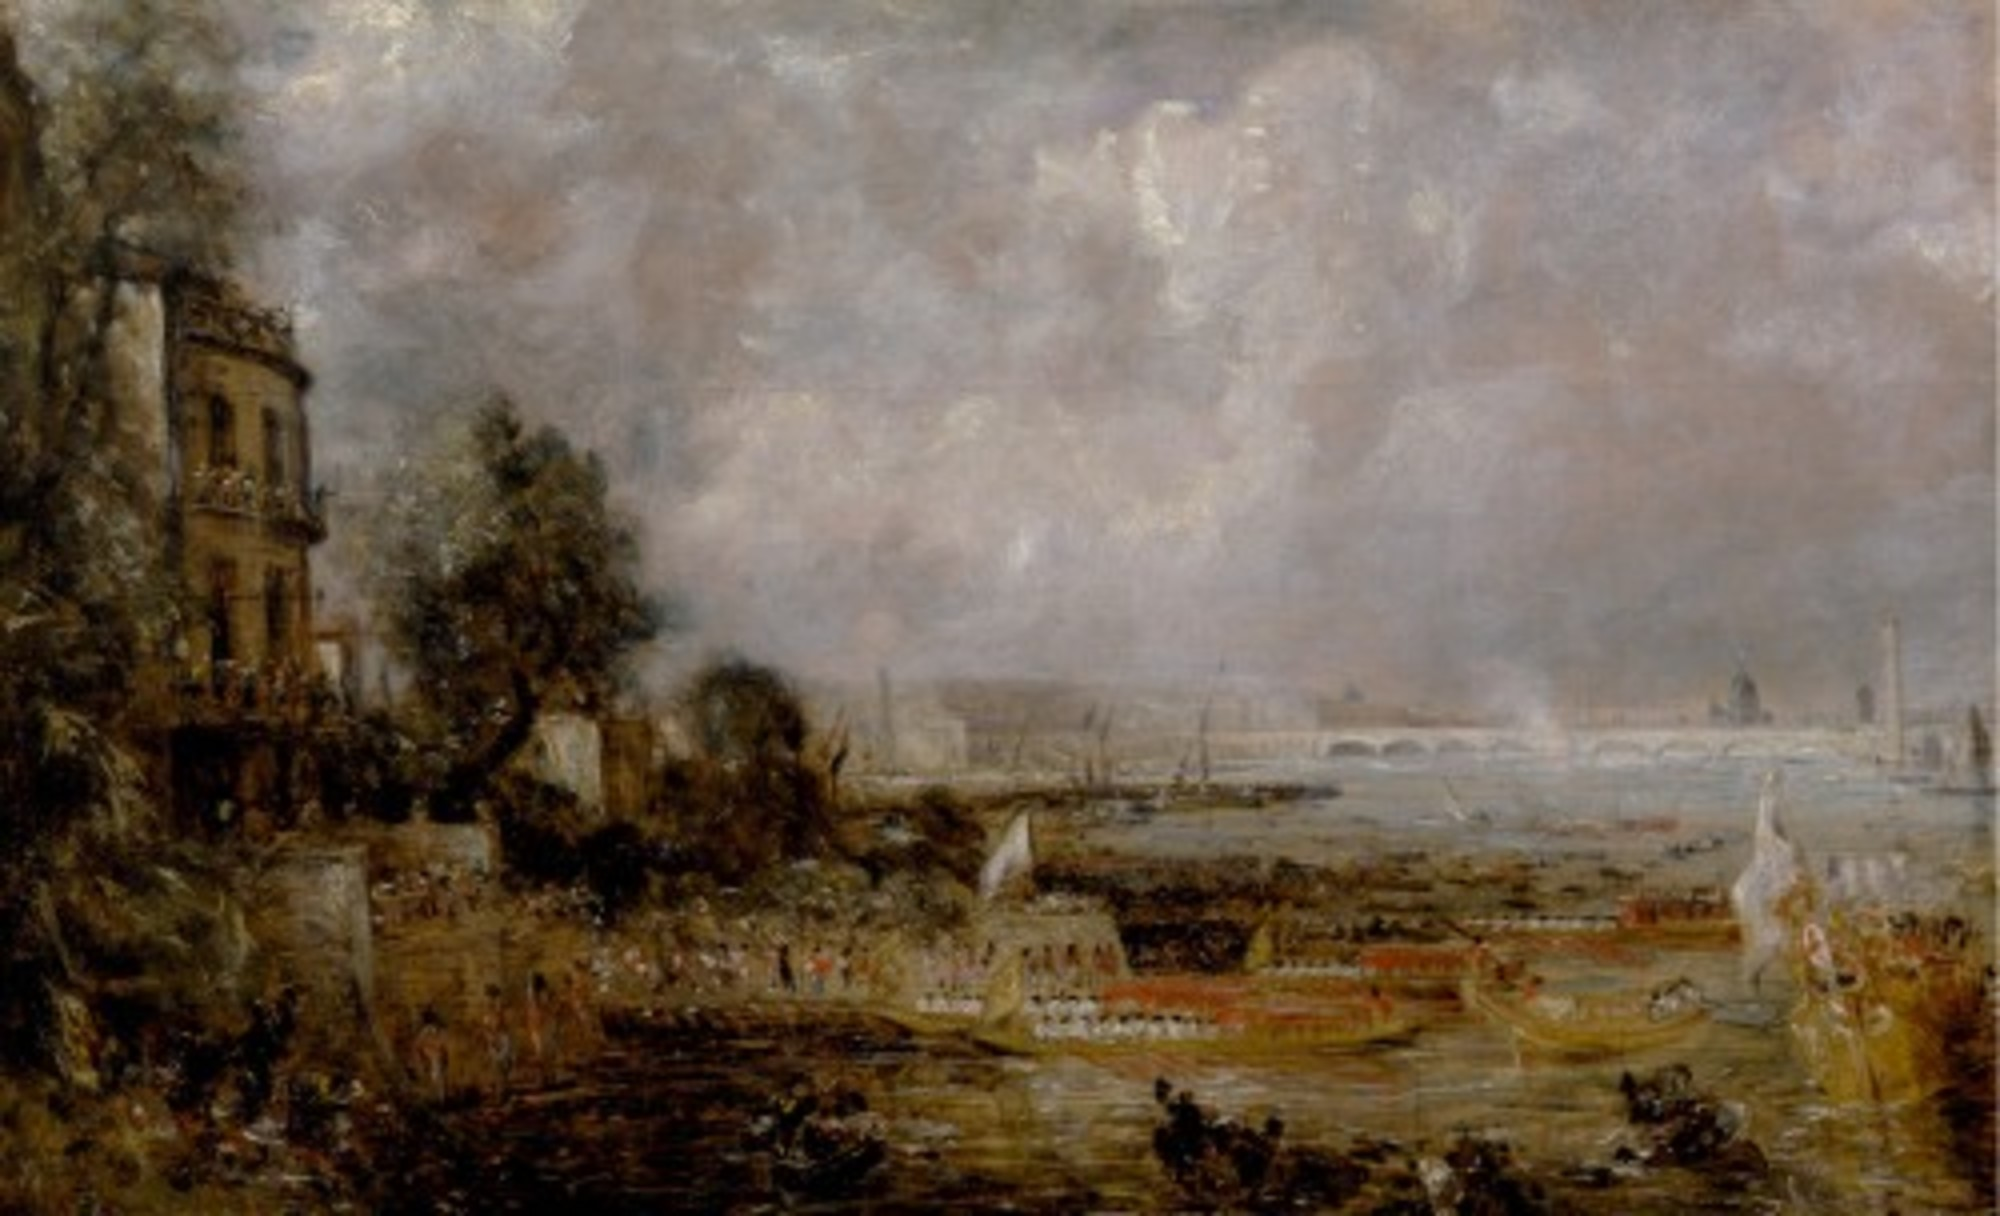 John-Constable---The-Opening-of-Waterloo-Bridge---Google-Art-Project.jpg